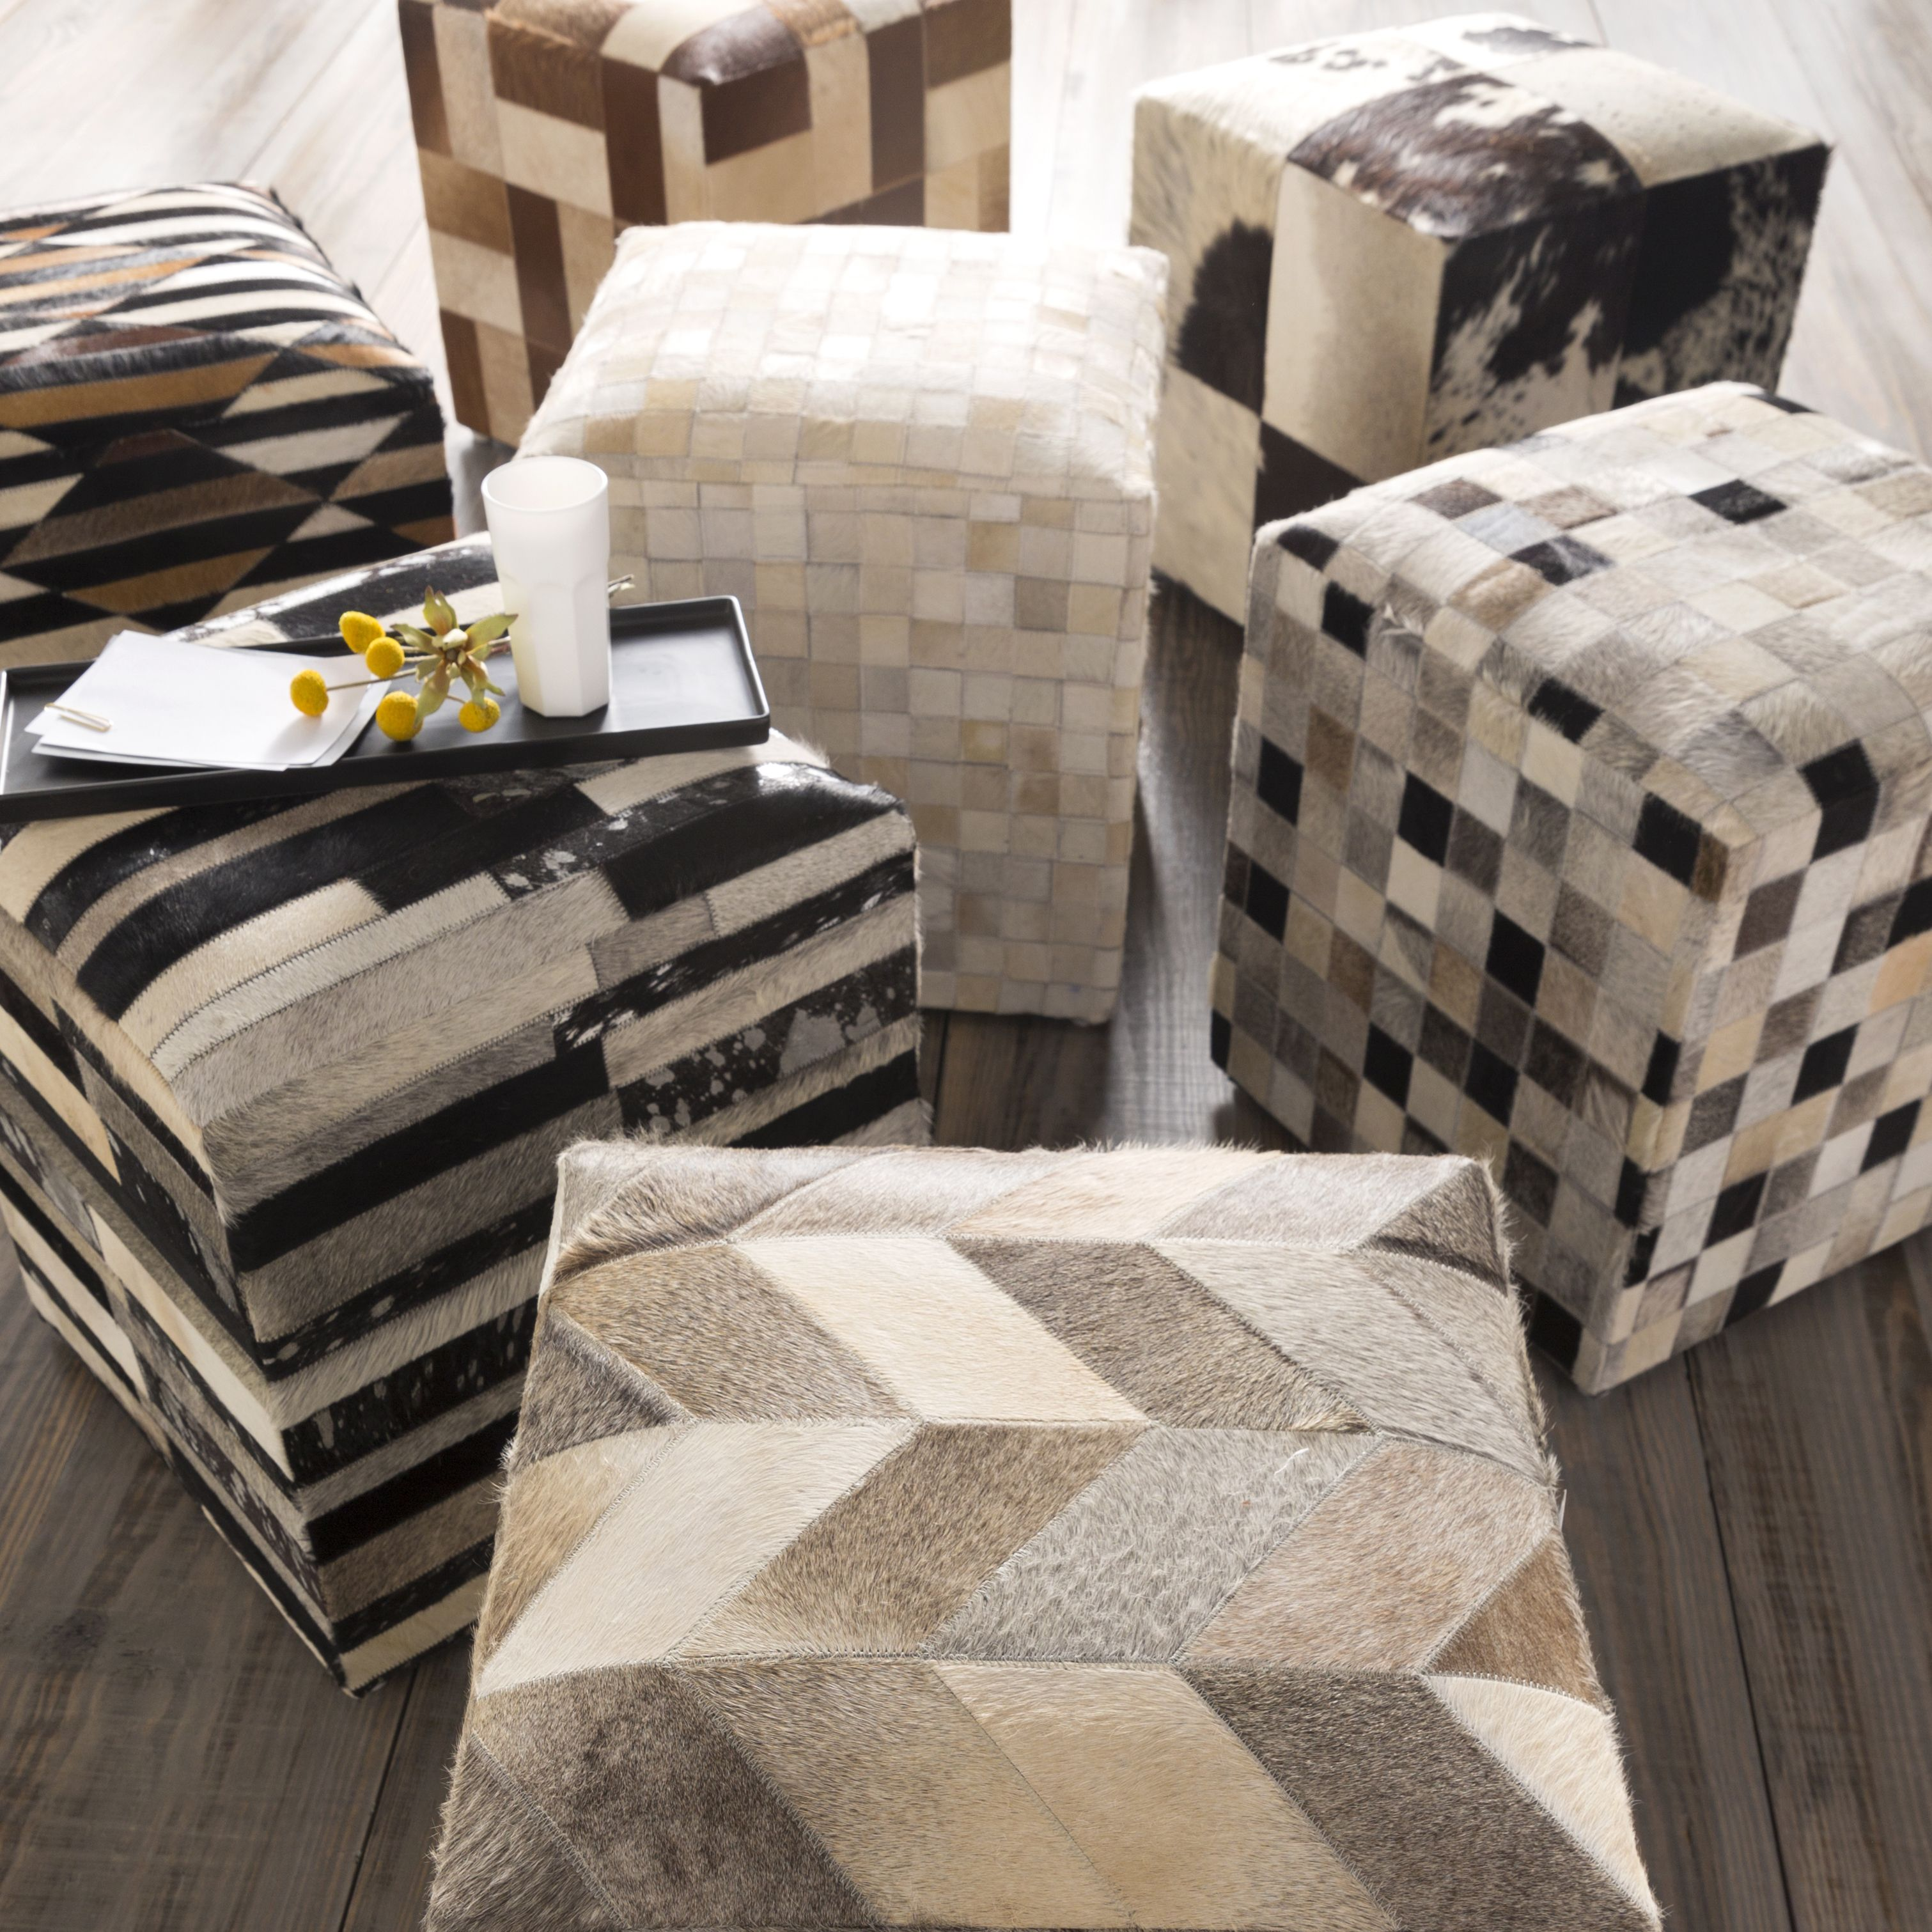 Genuine Cowhide Is Arranged In A Variety Of Contemporary